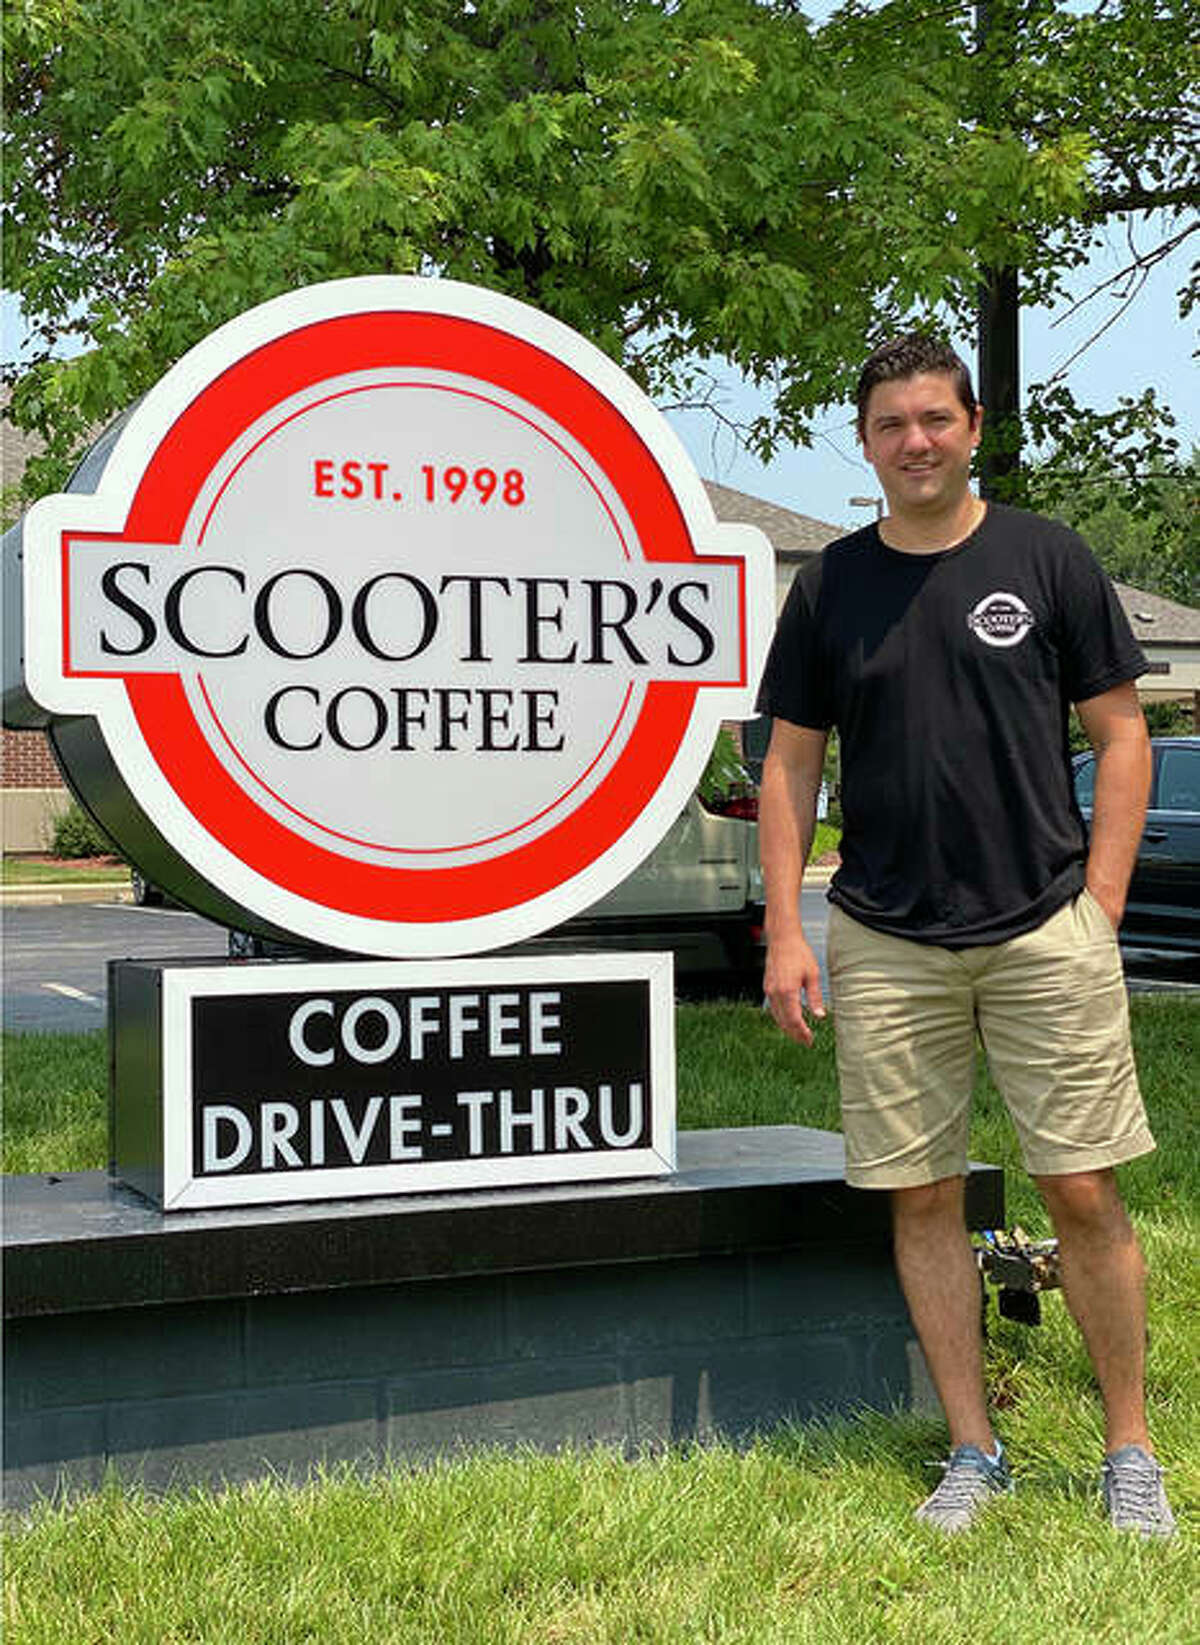 Robert Semptimphelter, owner of the Glen Carbon Scooter's Coffee that opened in August, is shown next to a sign for the business. Plans have been announced for a Godfrey Scooter's Coffee; village officials are waiting to review a formal proposal for the drive-through coffee shop.